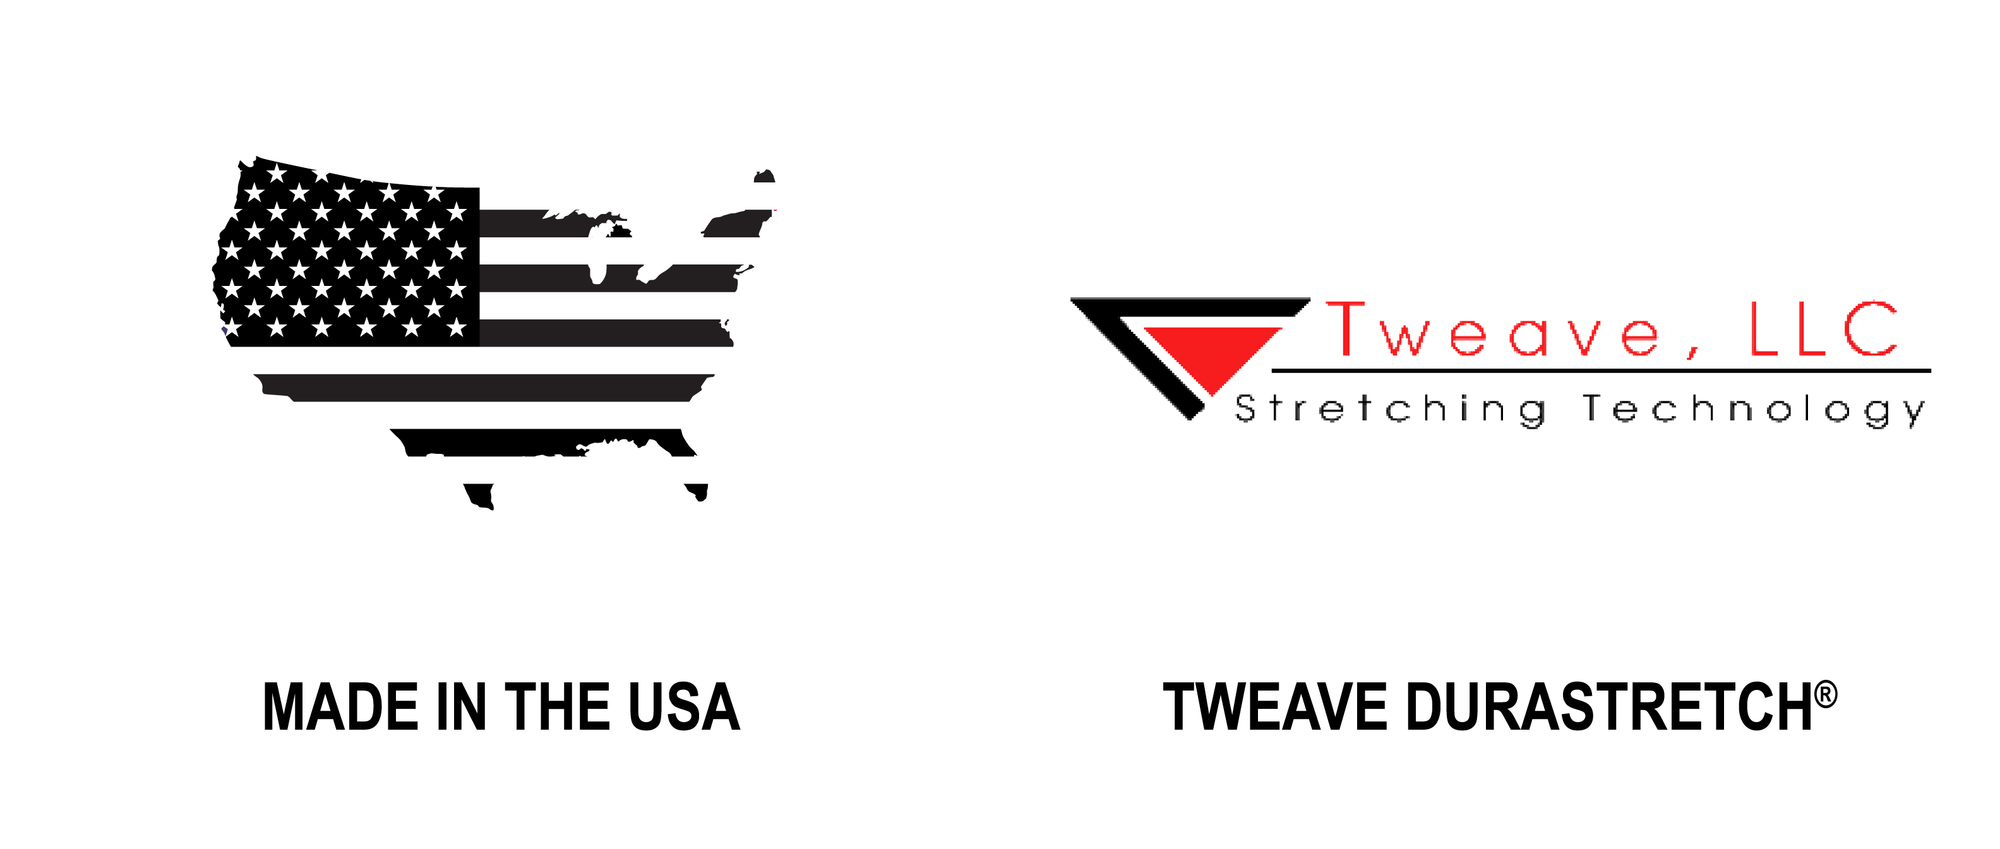 Made in the USA | Tweave Durastretch | 1620 Workwear, Inc.